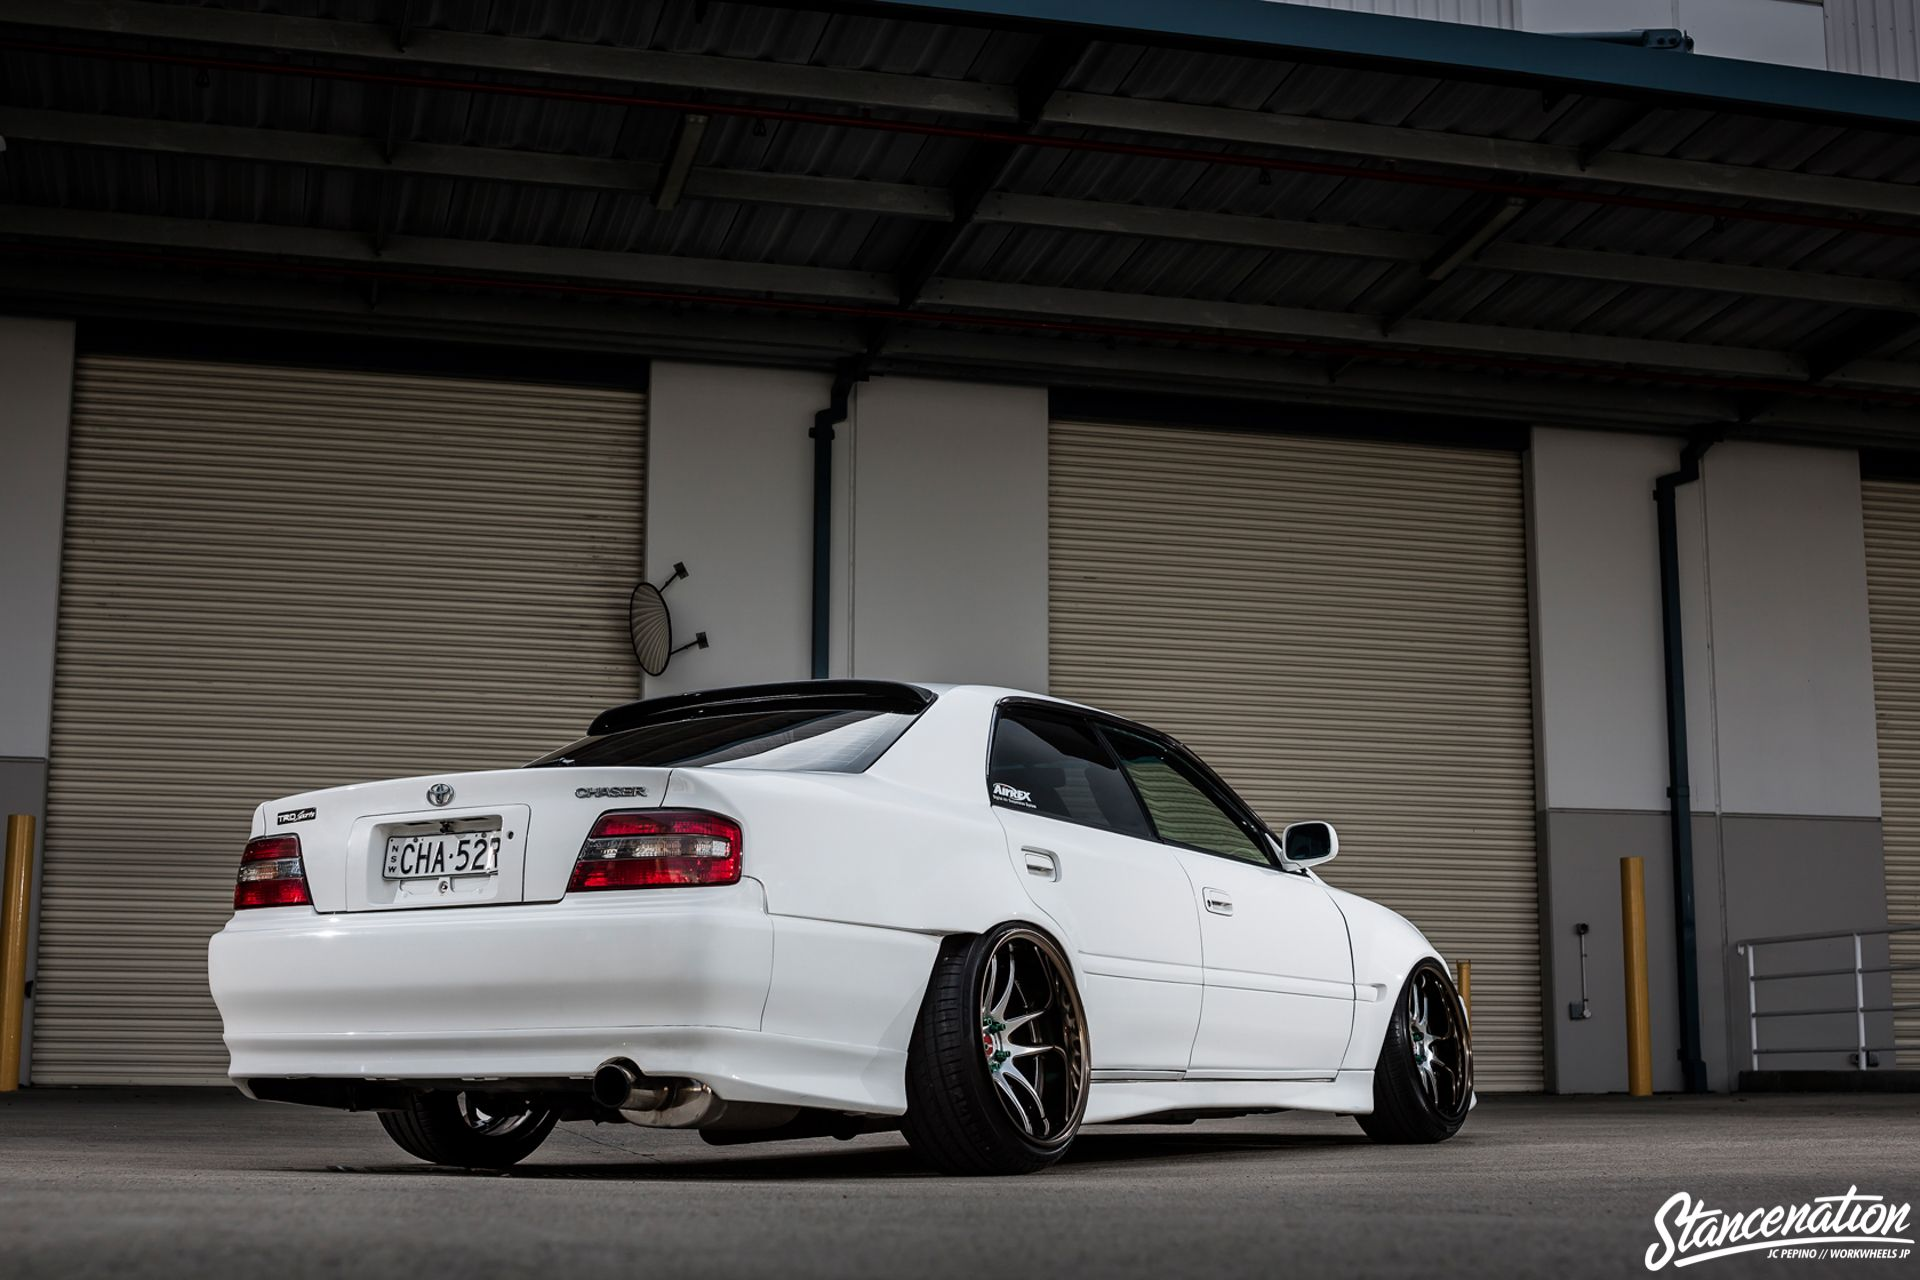 Genial StanceNation CR2P Work Wheels Toyota JZX100 17